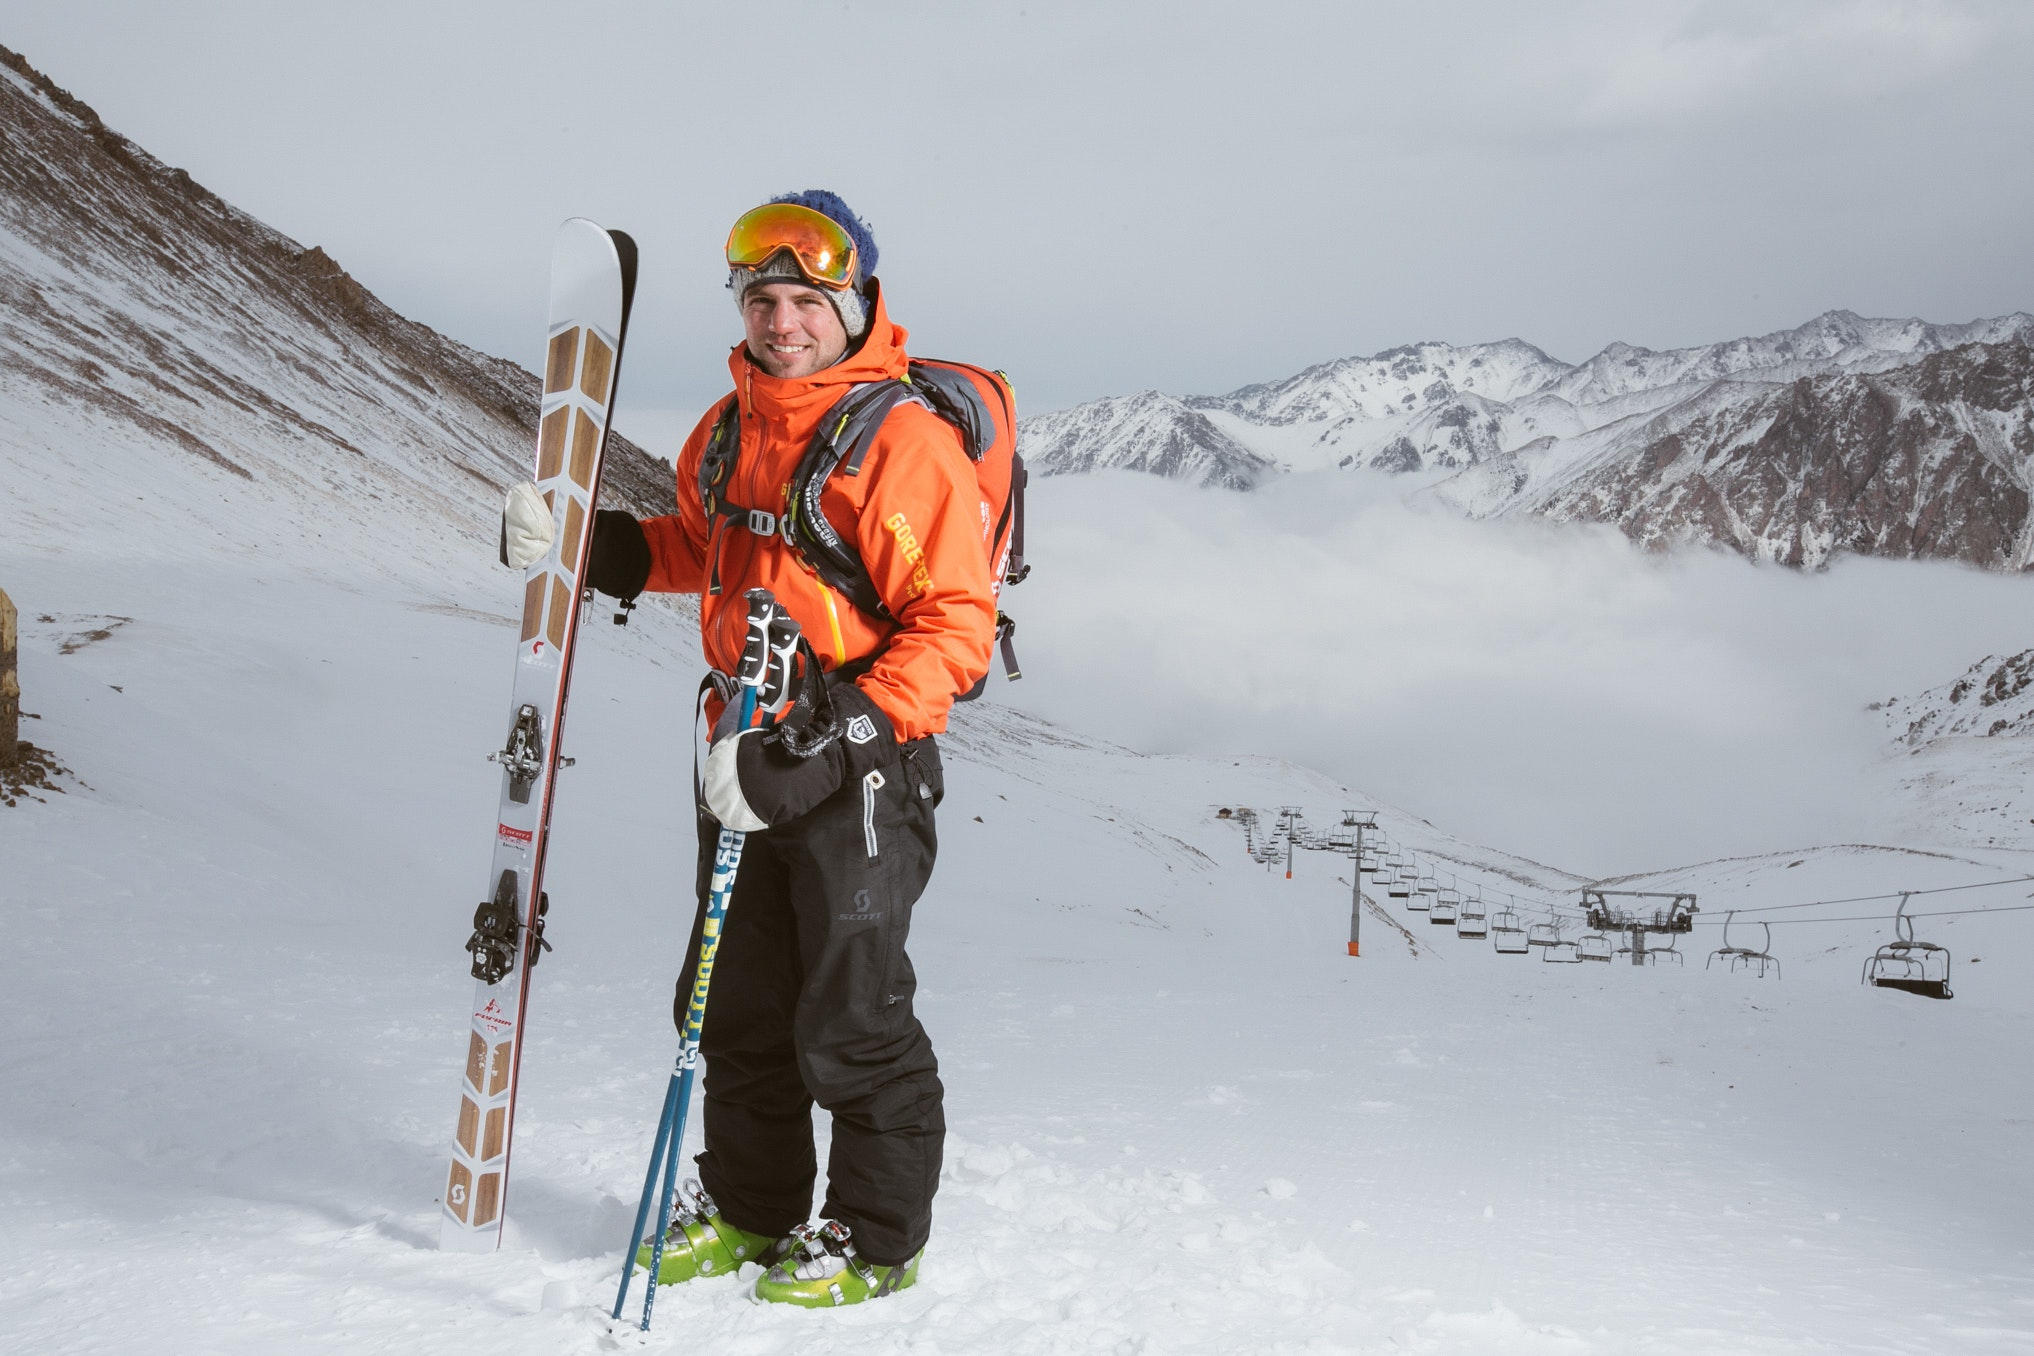 Man Wearing Orange and Black Snowsuit With Ski Set on Snow Near Cable Cars, Backpack, Outdoors, Sport, Snowy, HQ Photo